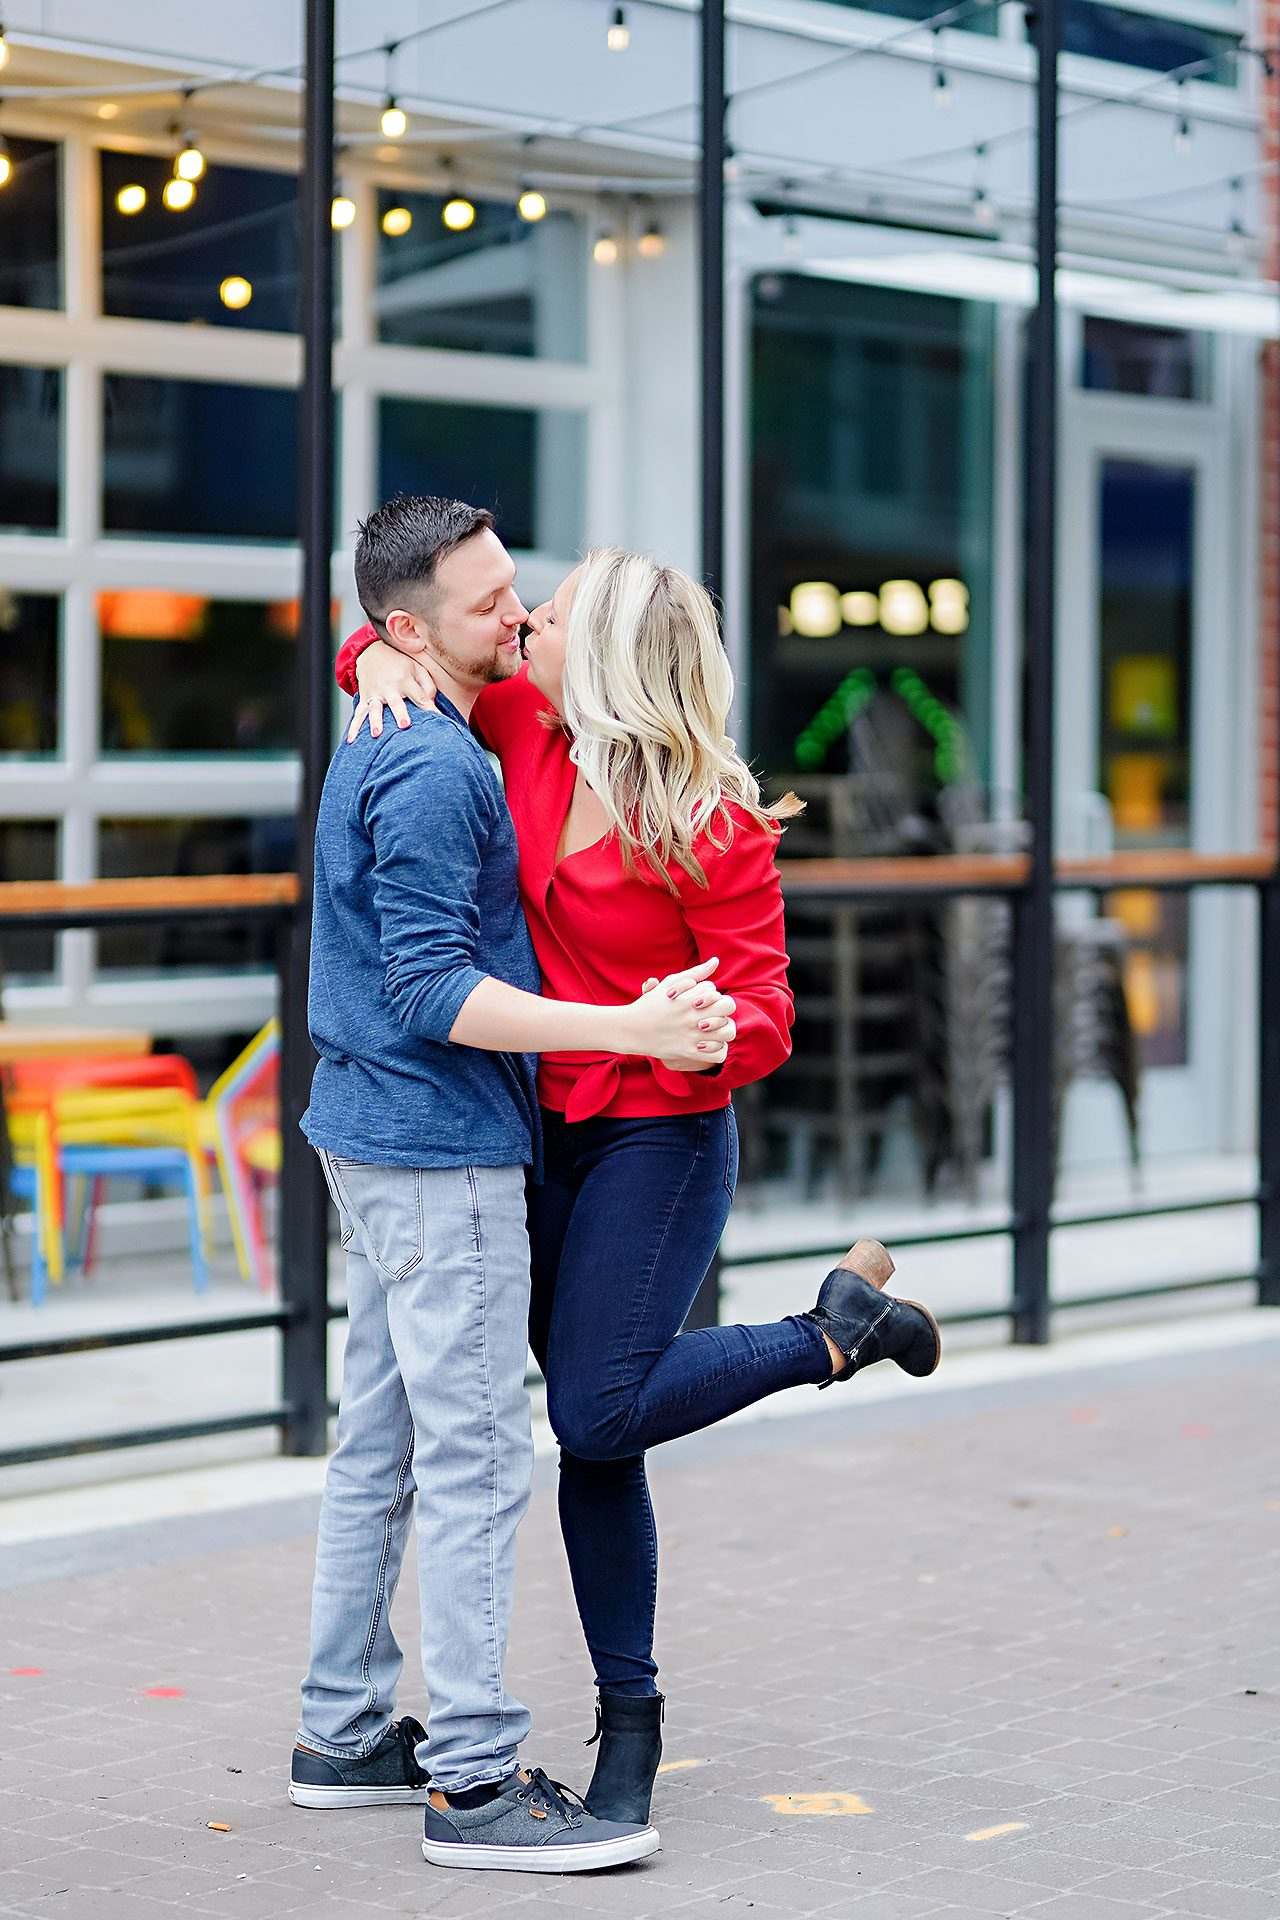 Kristen Jonny Indianapolis Downtown Engagement Session 014